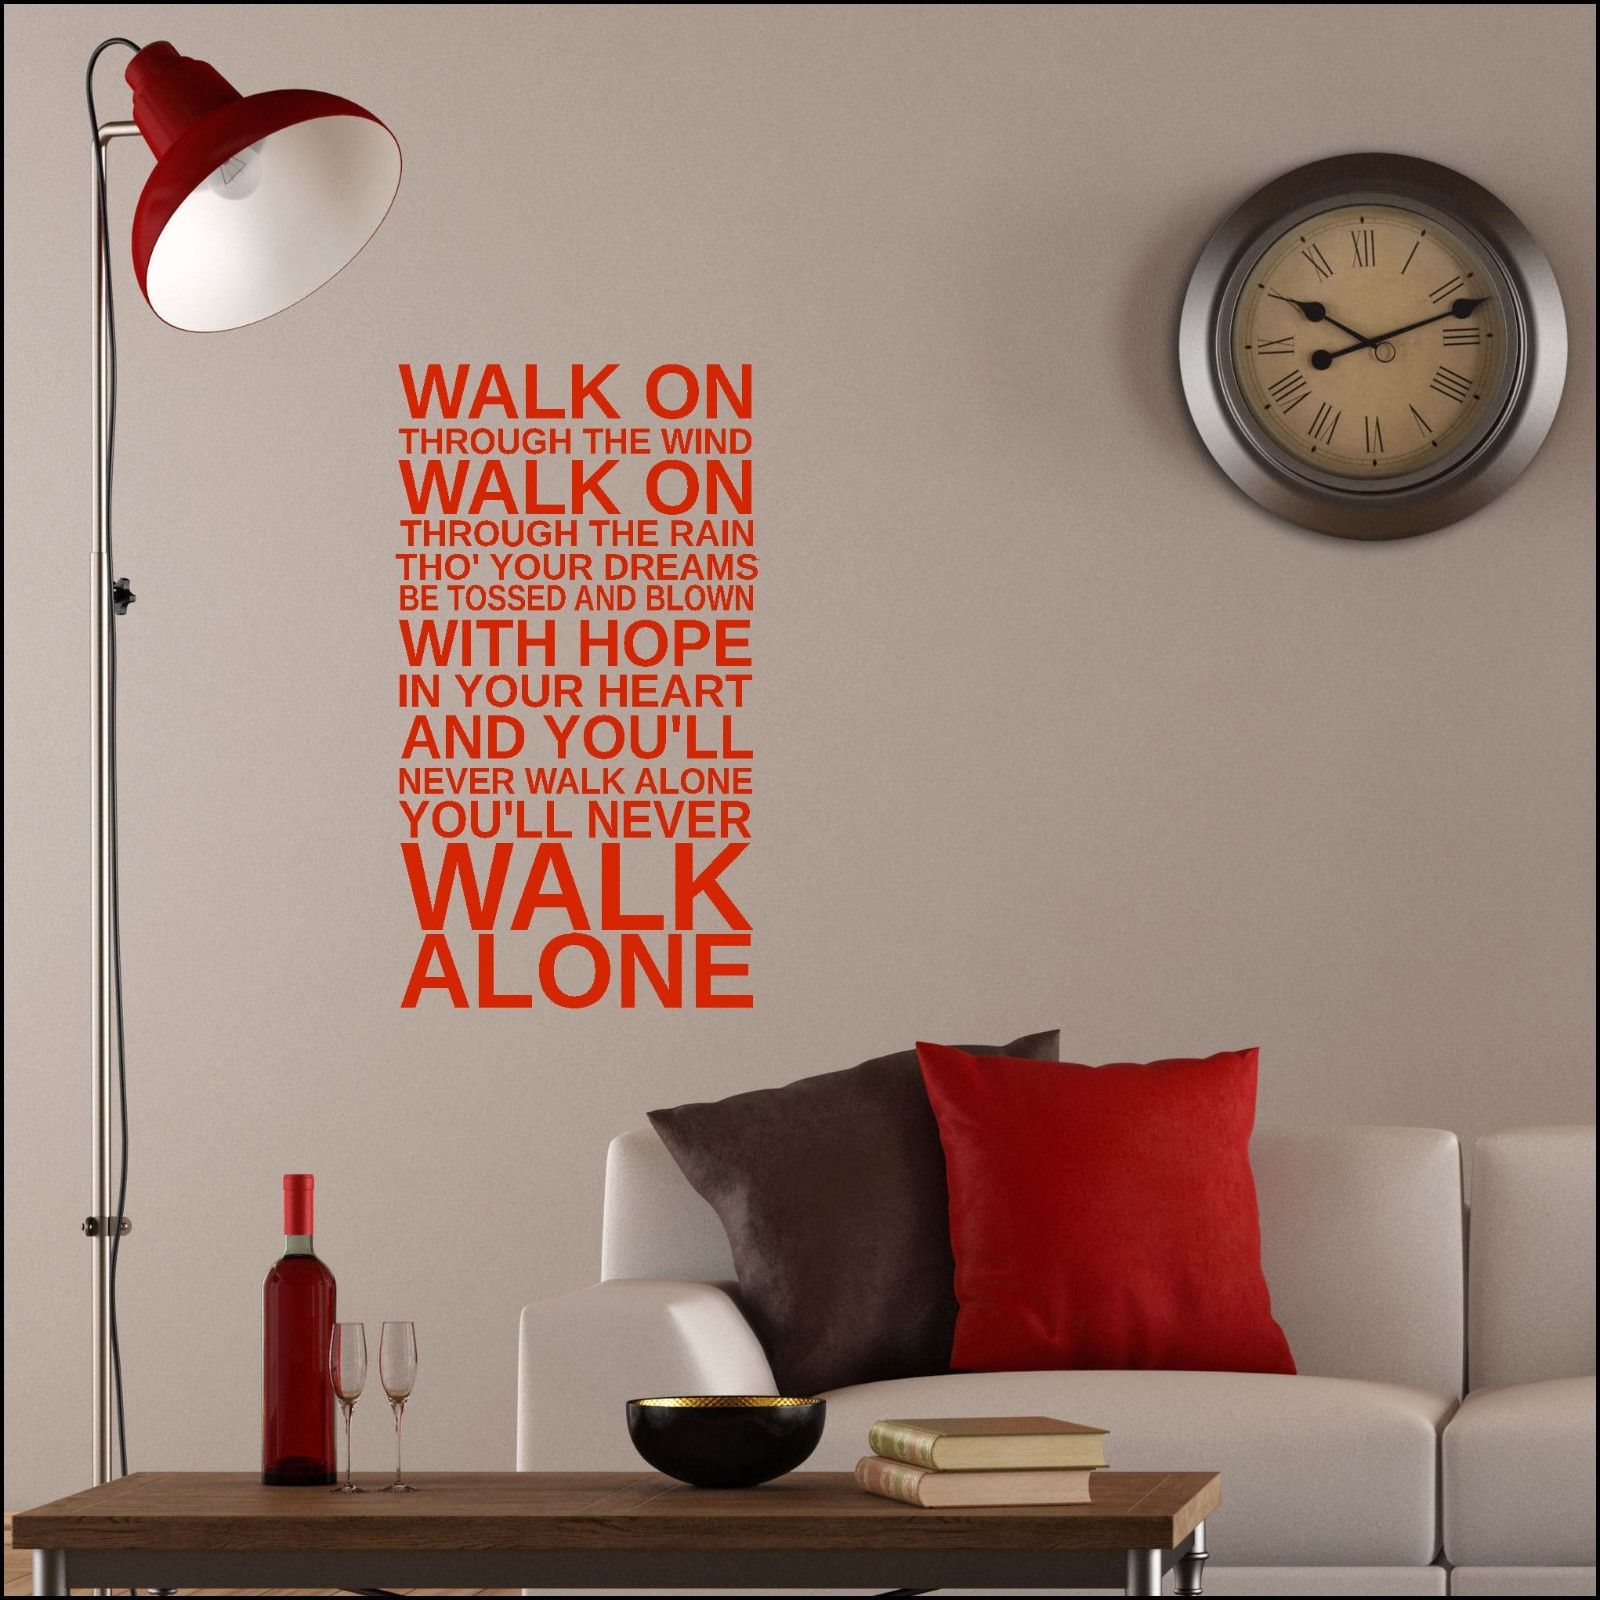 Liverpool wall stickers gallery home wall decoration ideas wall sticker liverpool anthem walk on through the rain wind wall sticker liverpool anthem walk on amipublicfo Gallery